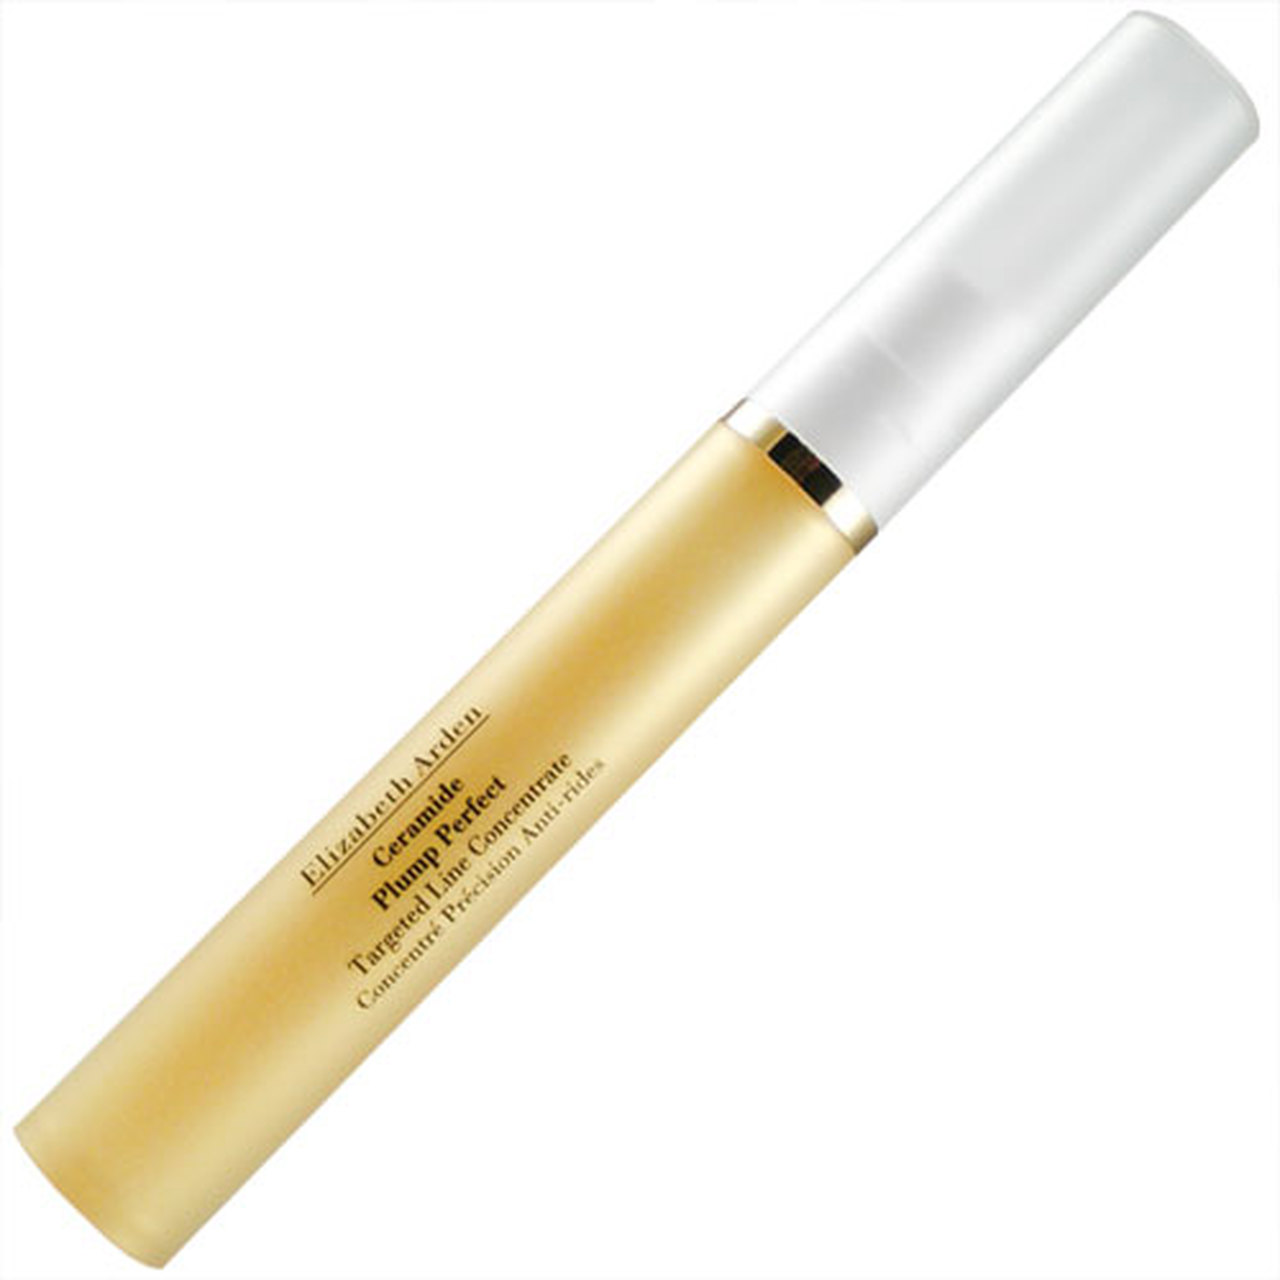 related product products/images/ElizabethArden-CeramidePlumpPerfectTargetedLineConcentrate